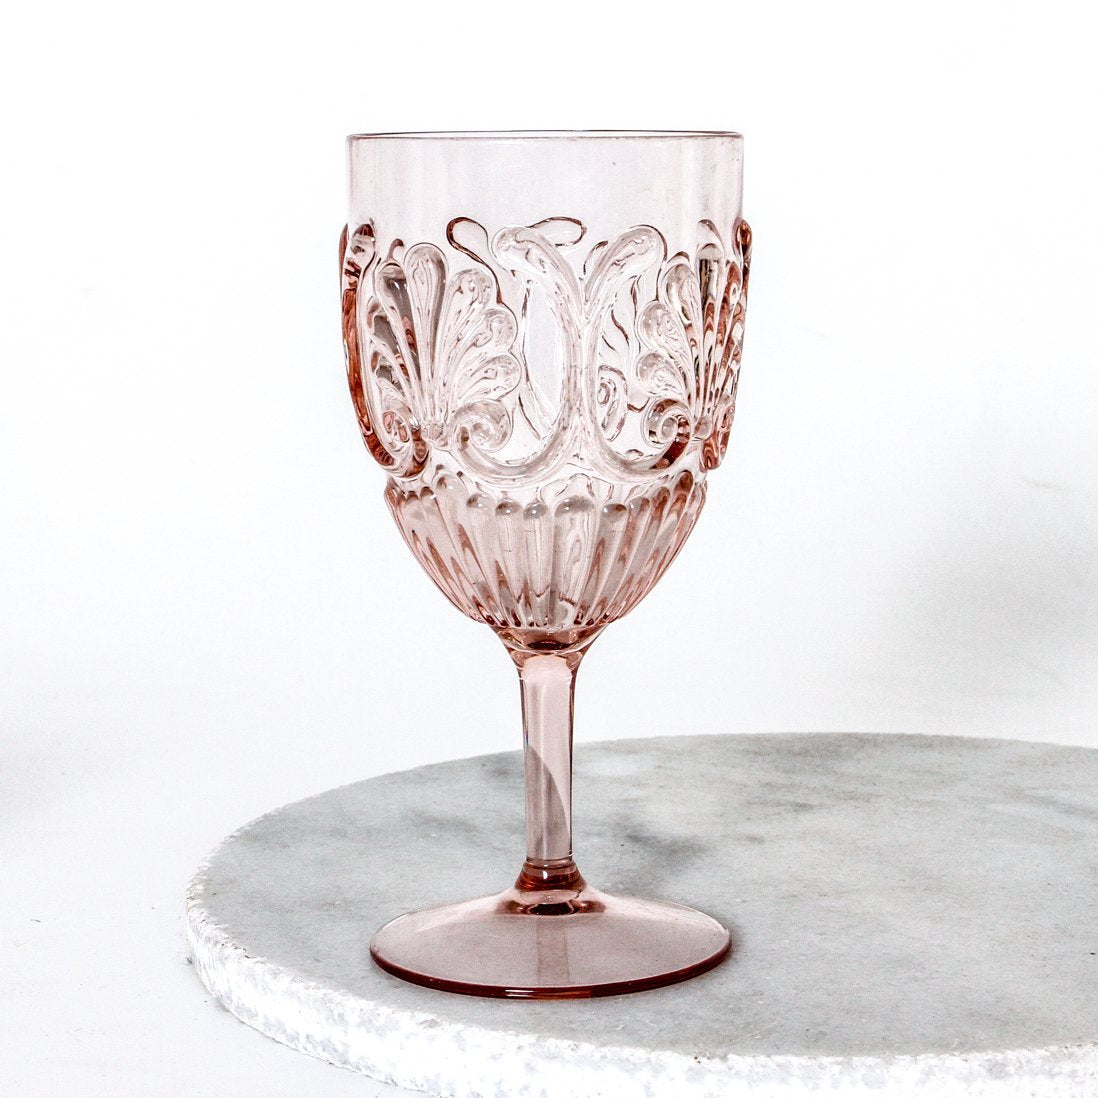 Flemington Acrylic Wine Glasses